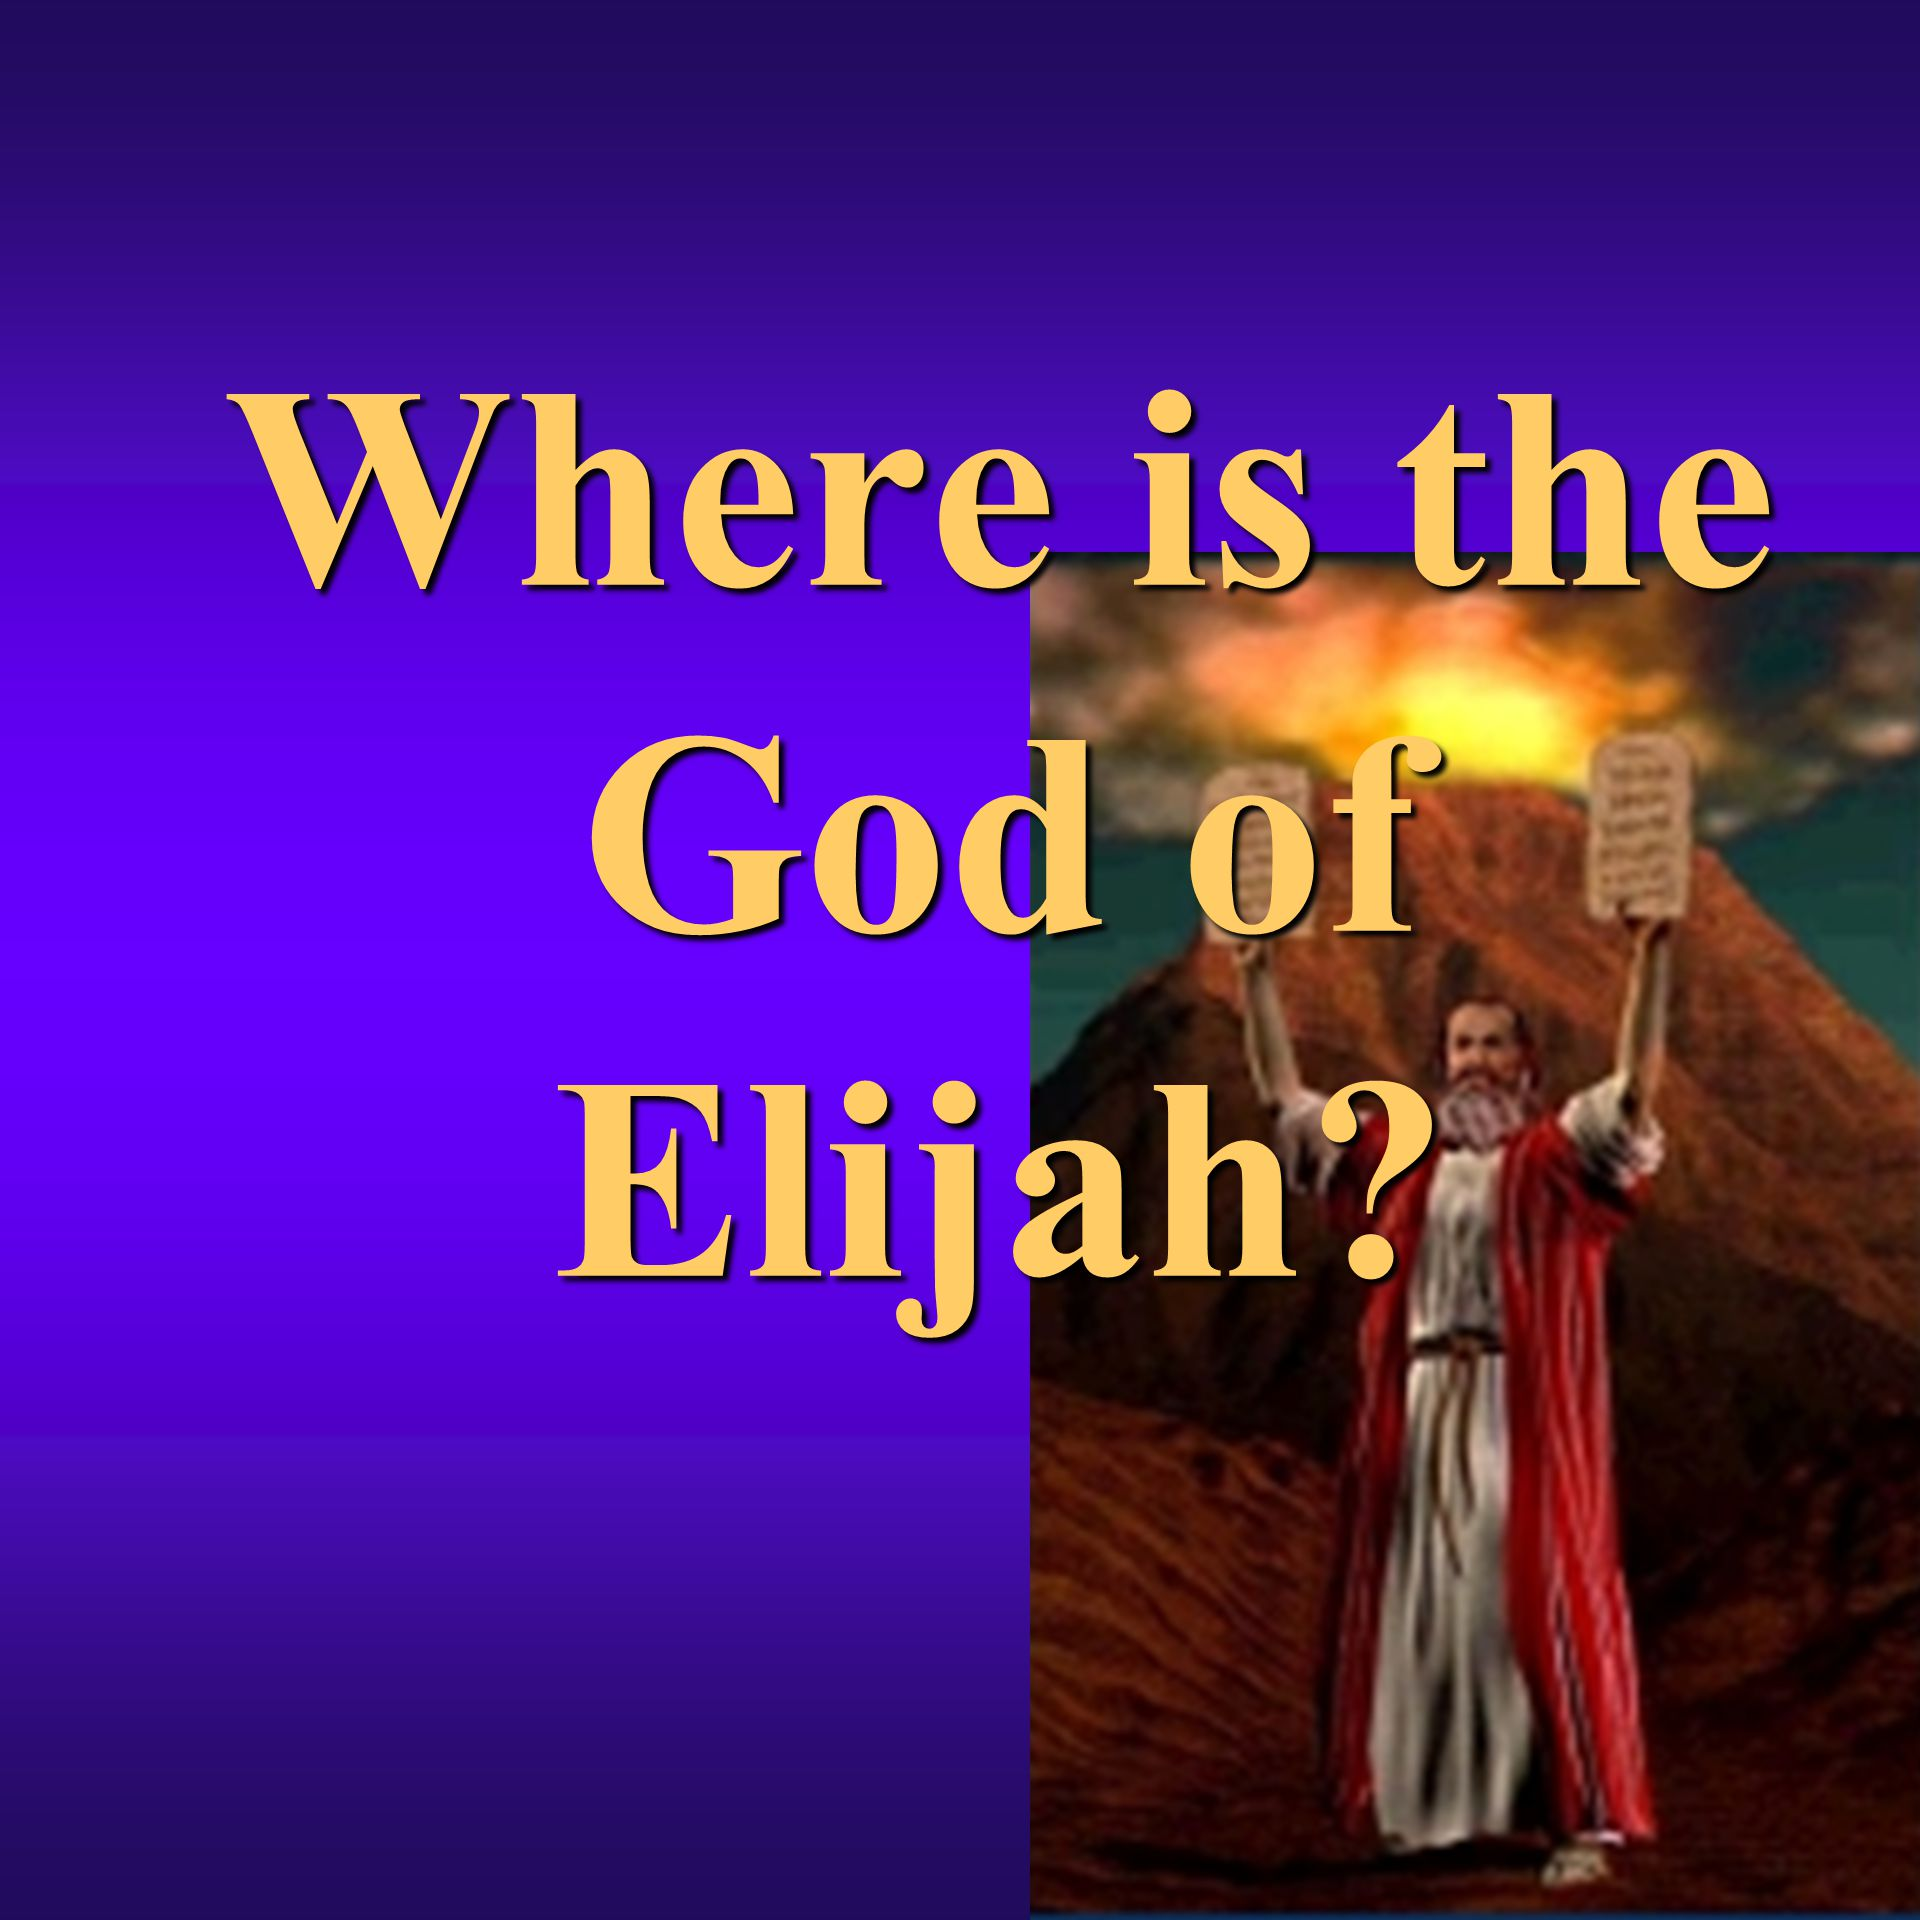 Where is the God of Elijah